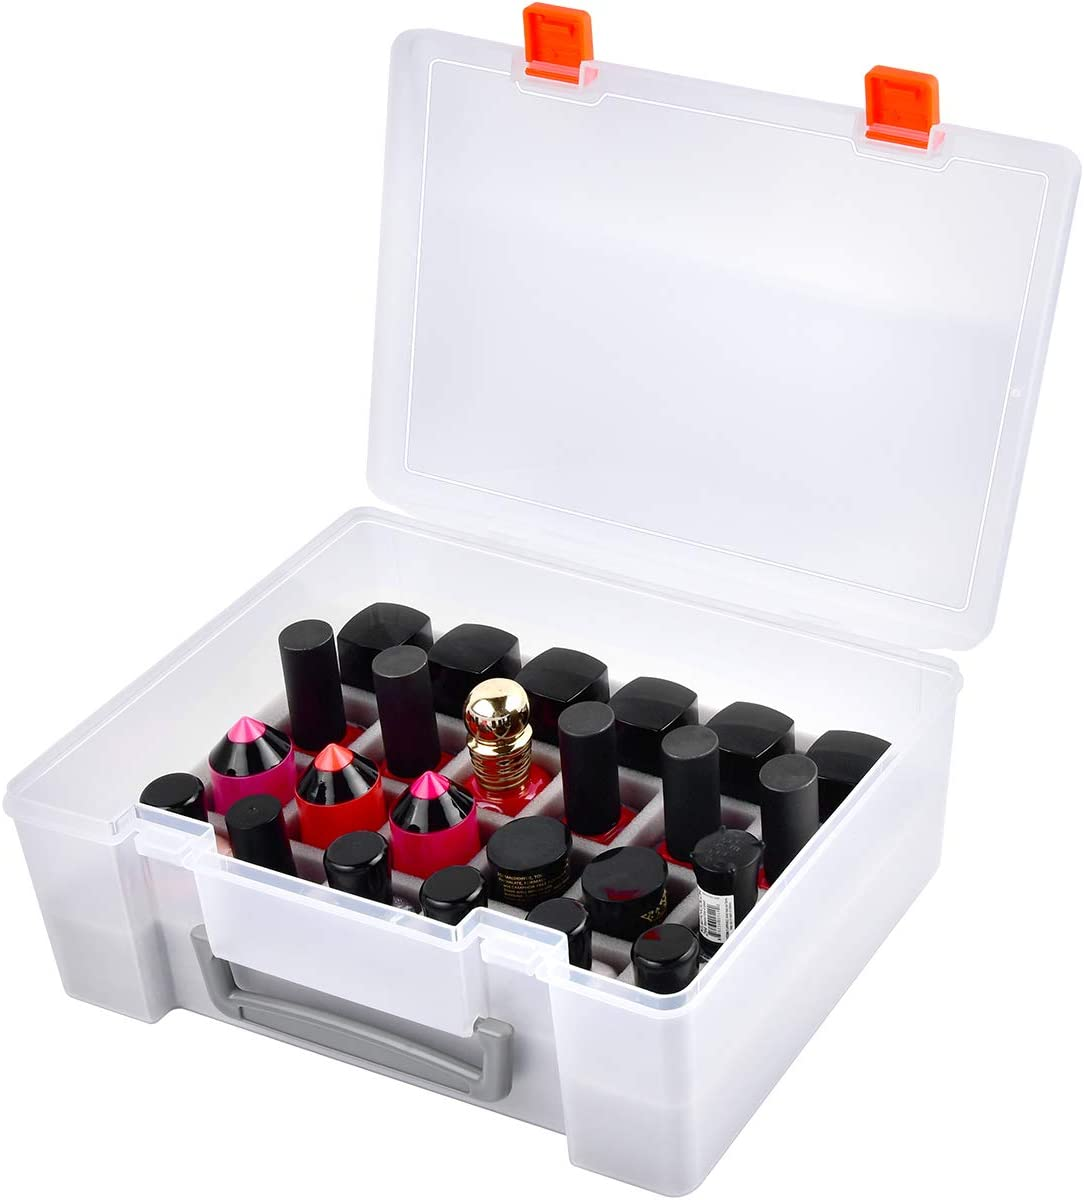 Universal Nail Polish Holder & Organizer Contains 24 Bottles for Gellen, Beetles, Sally Hansen, OPI, Essie and Other Fingernail Polish by ALCYON (ONLY A CASE).